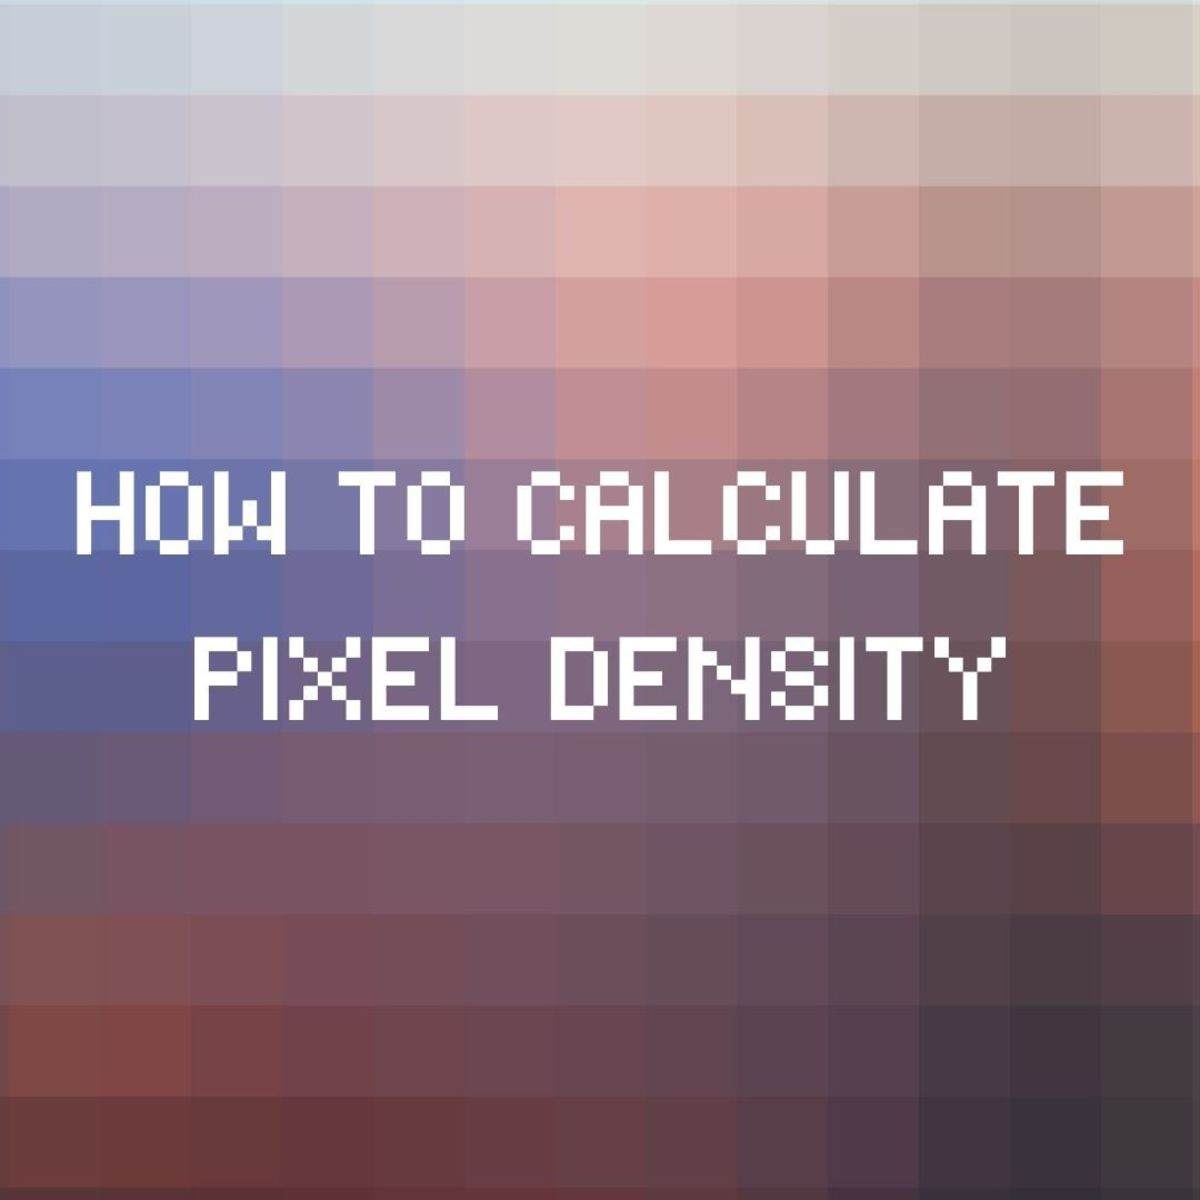 How to calculate a display pixel's density